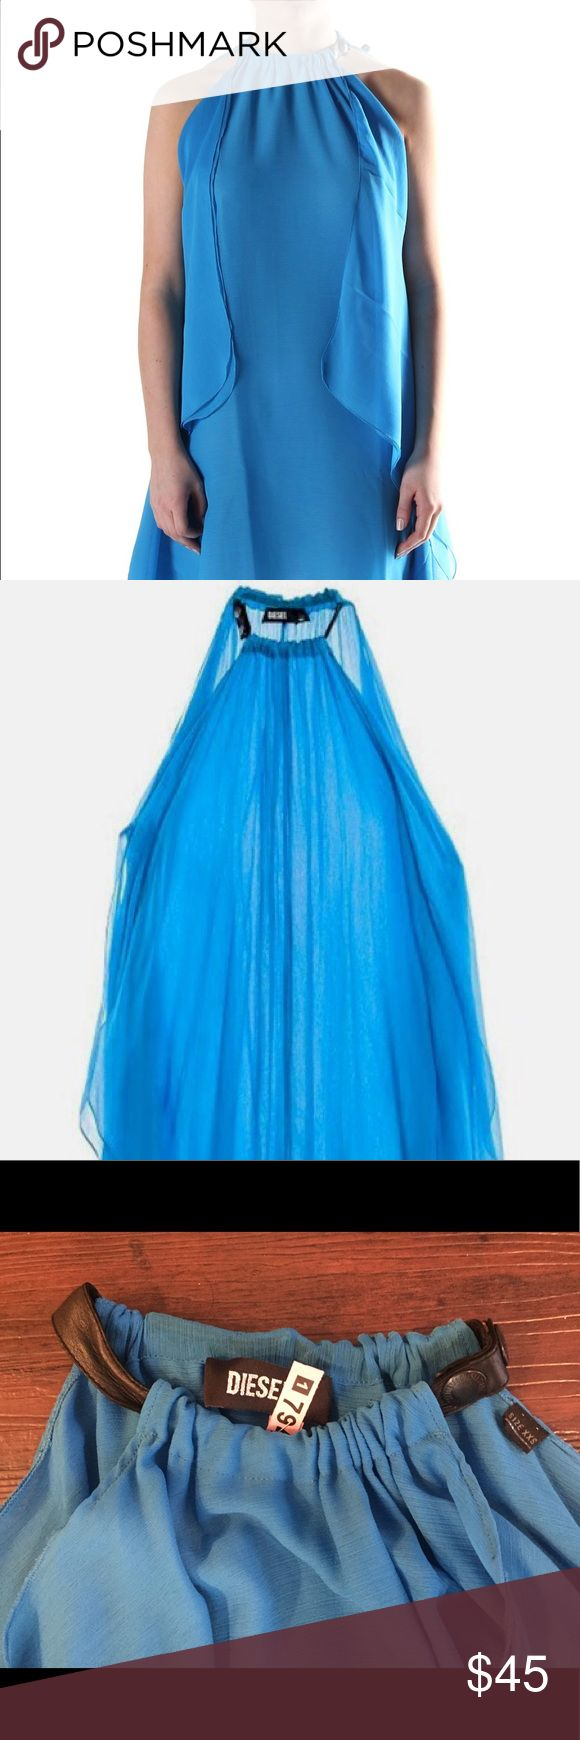 """Blue Diesel Halter Asymmetrical Flowy Dress Blue Diesel Halter Dress XXS. I'm 5'10 and 140lbs, 32D and it fits me (I had the collar altered so it's comfortable!) and any sizes 0-6. Fully lined. Chiffon. Pulls on over head. 100% Sheepskin leather collar. Such a flattering dress for any body type. Makes your shoulders look great!! This dress was a tad short for my conservative taste. Worn once. 40.5"""" in length at its' longest point. Absolutely stunning and unique. Top quality. Diesel Dresses…"""